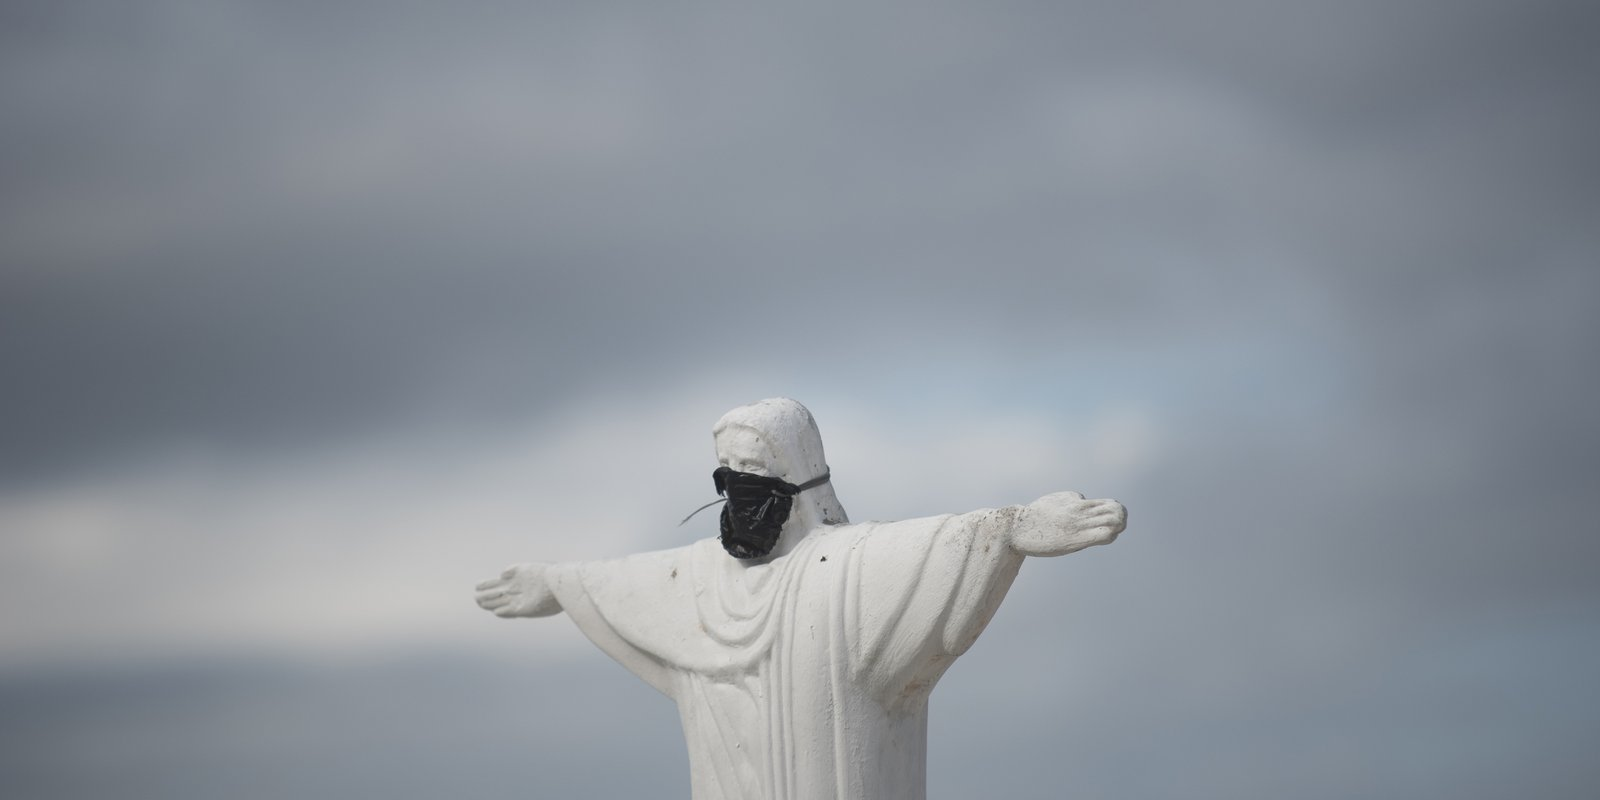 Replica of Christ the Redeemer with surgical mask on Copacabana beach, to remind people about the danger of the coronavirus (COVID-19) in Rio De Janeiro, Brazil on April 01, 2020. (Photo by Fabio Teixeira/Anadolu Agency via Getty Images)